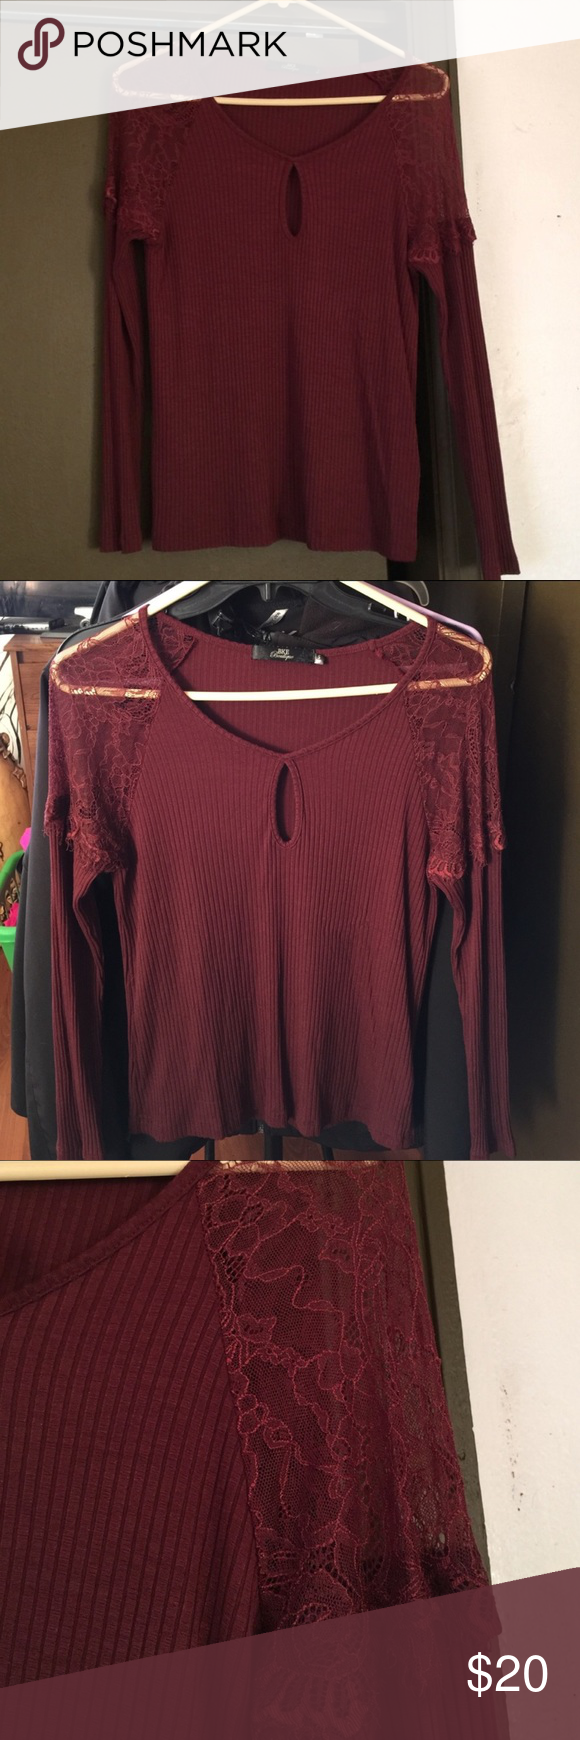 BKE Boutique Top In excellent condition! Like new! It's just too big for me! Very cute on, sexy but very professional top. Still on Buckle.com to $45, I'm asking $20 firm! Thank you! Buckle Tops Tees - Long Sleeve